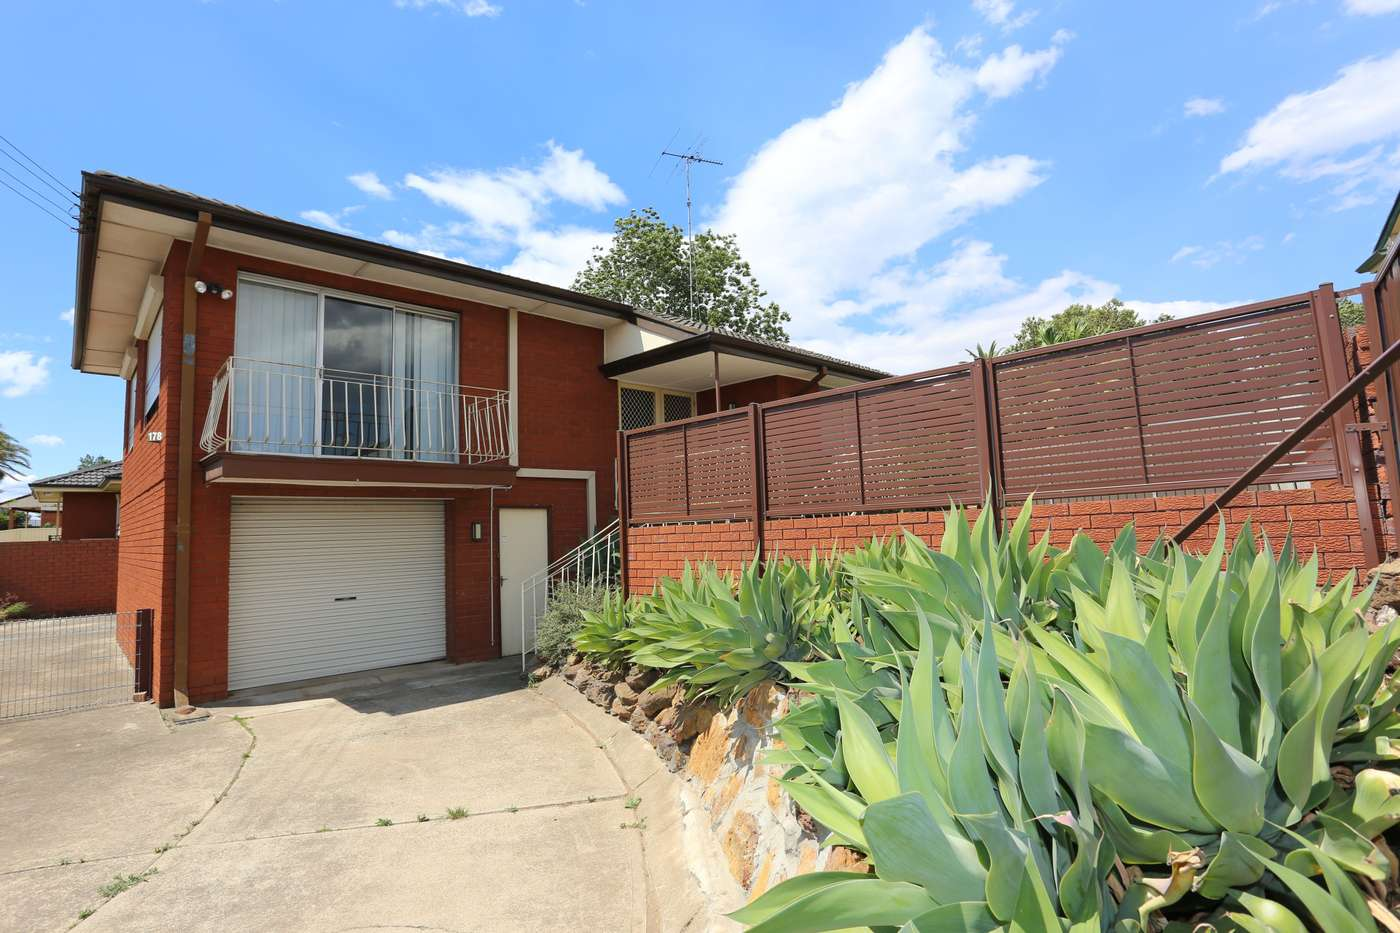 Main view of Homely house listing, 178 Parker Street, Kingswood, NSW 2747